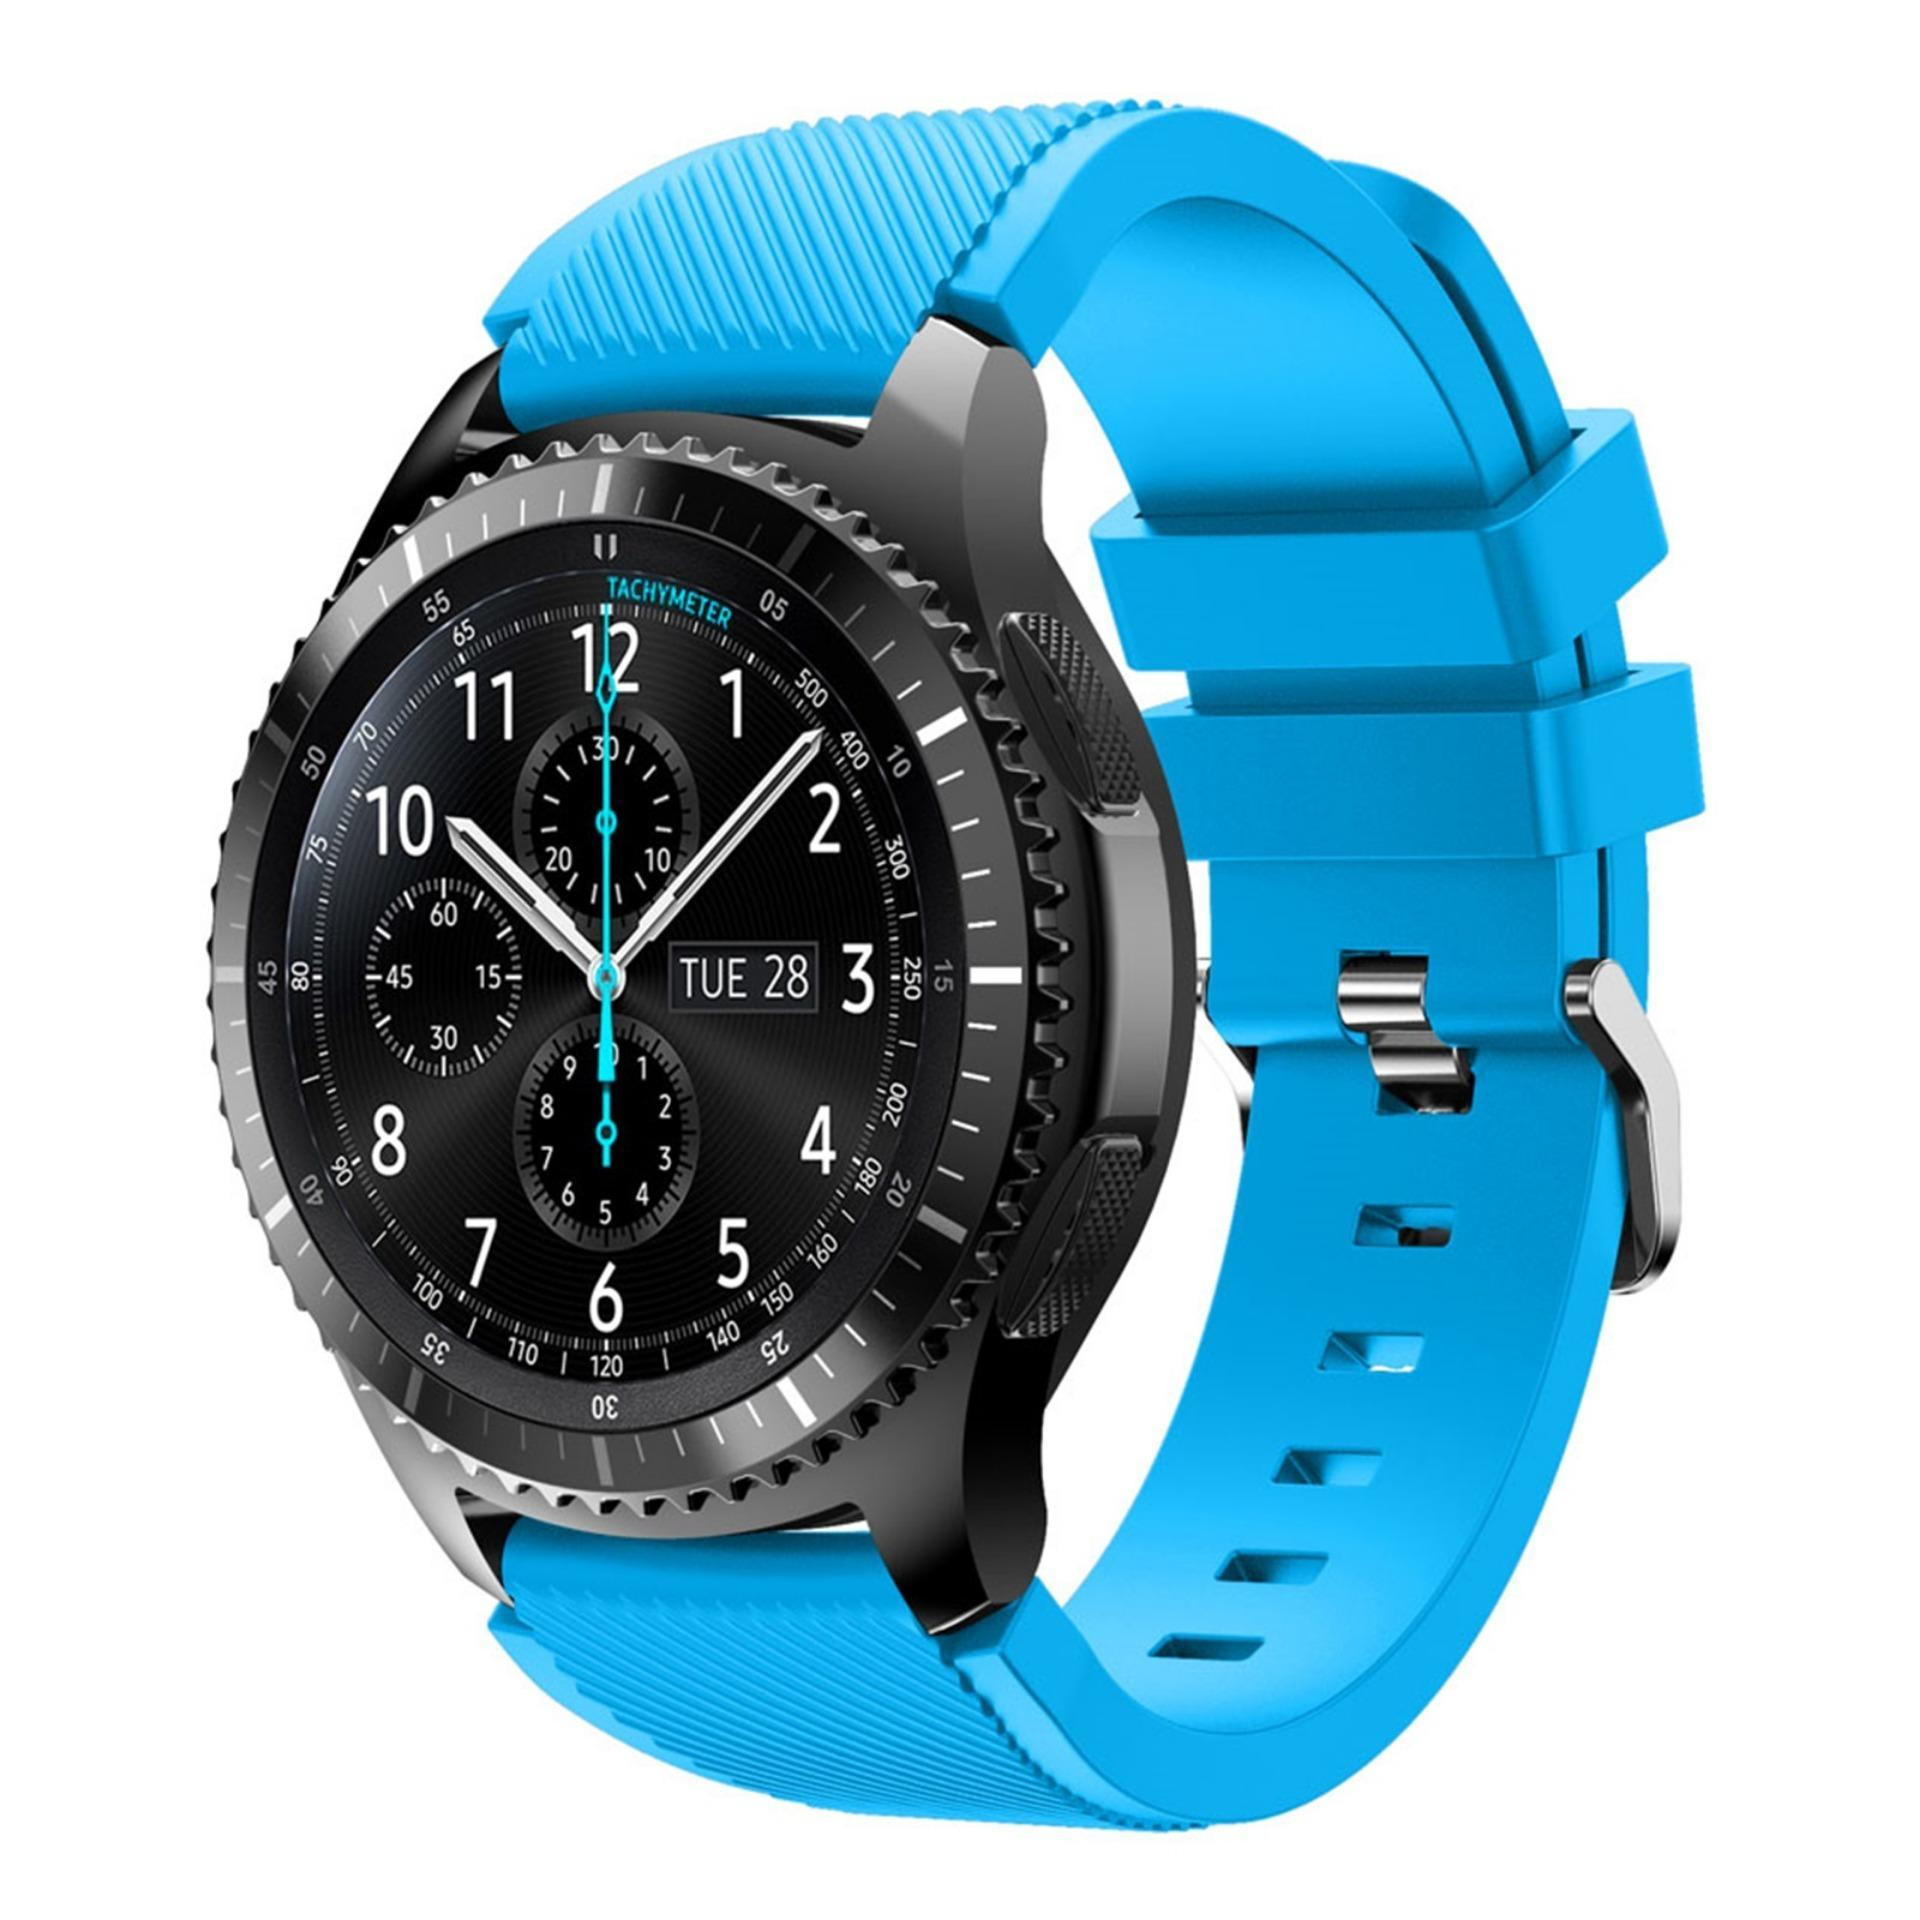 Strap for Samsung Galaxy Gear S3 Classic SM-R770 S3 FrontierSM-